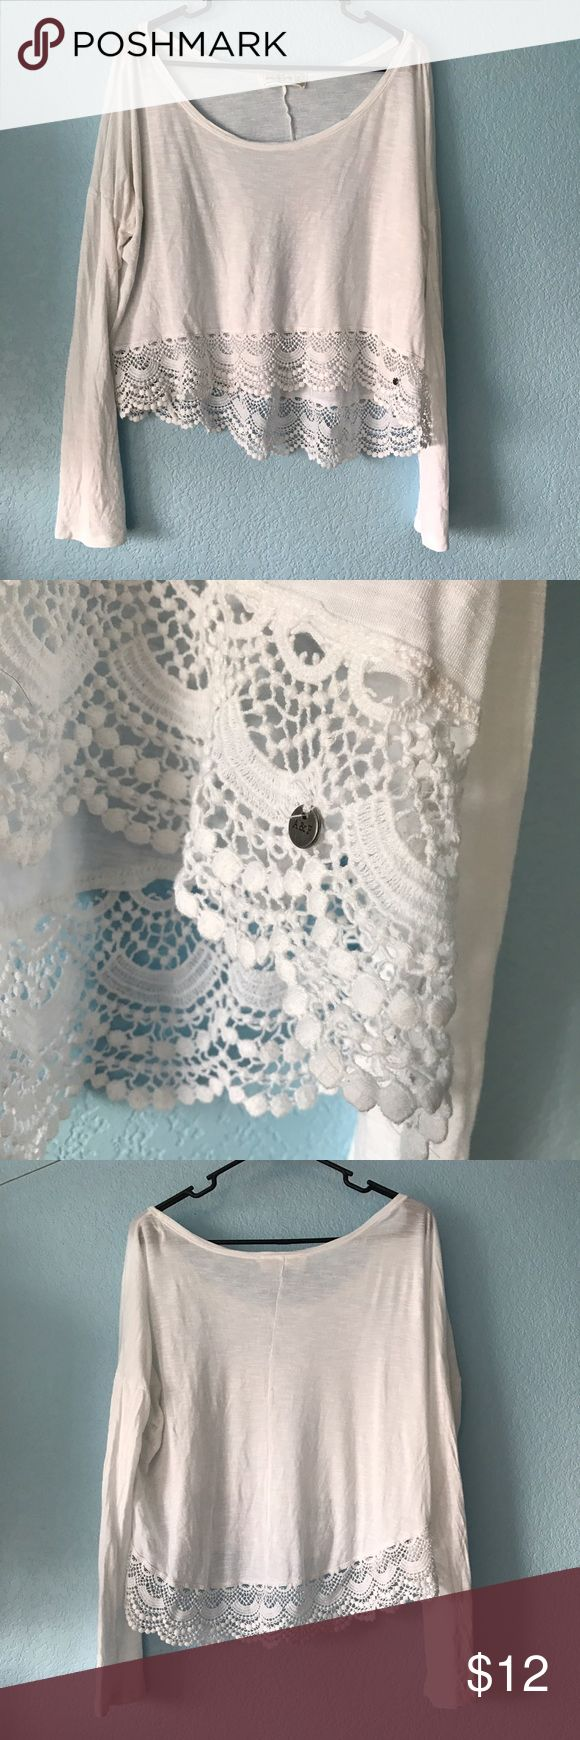 Lace hem Long Sleeve I love this shirt! EUC! Pretty lace hem, kind of high low style! Abercrombie & Fitch Tops